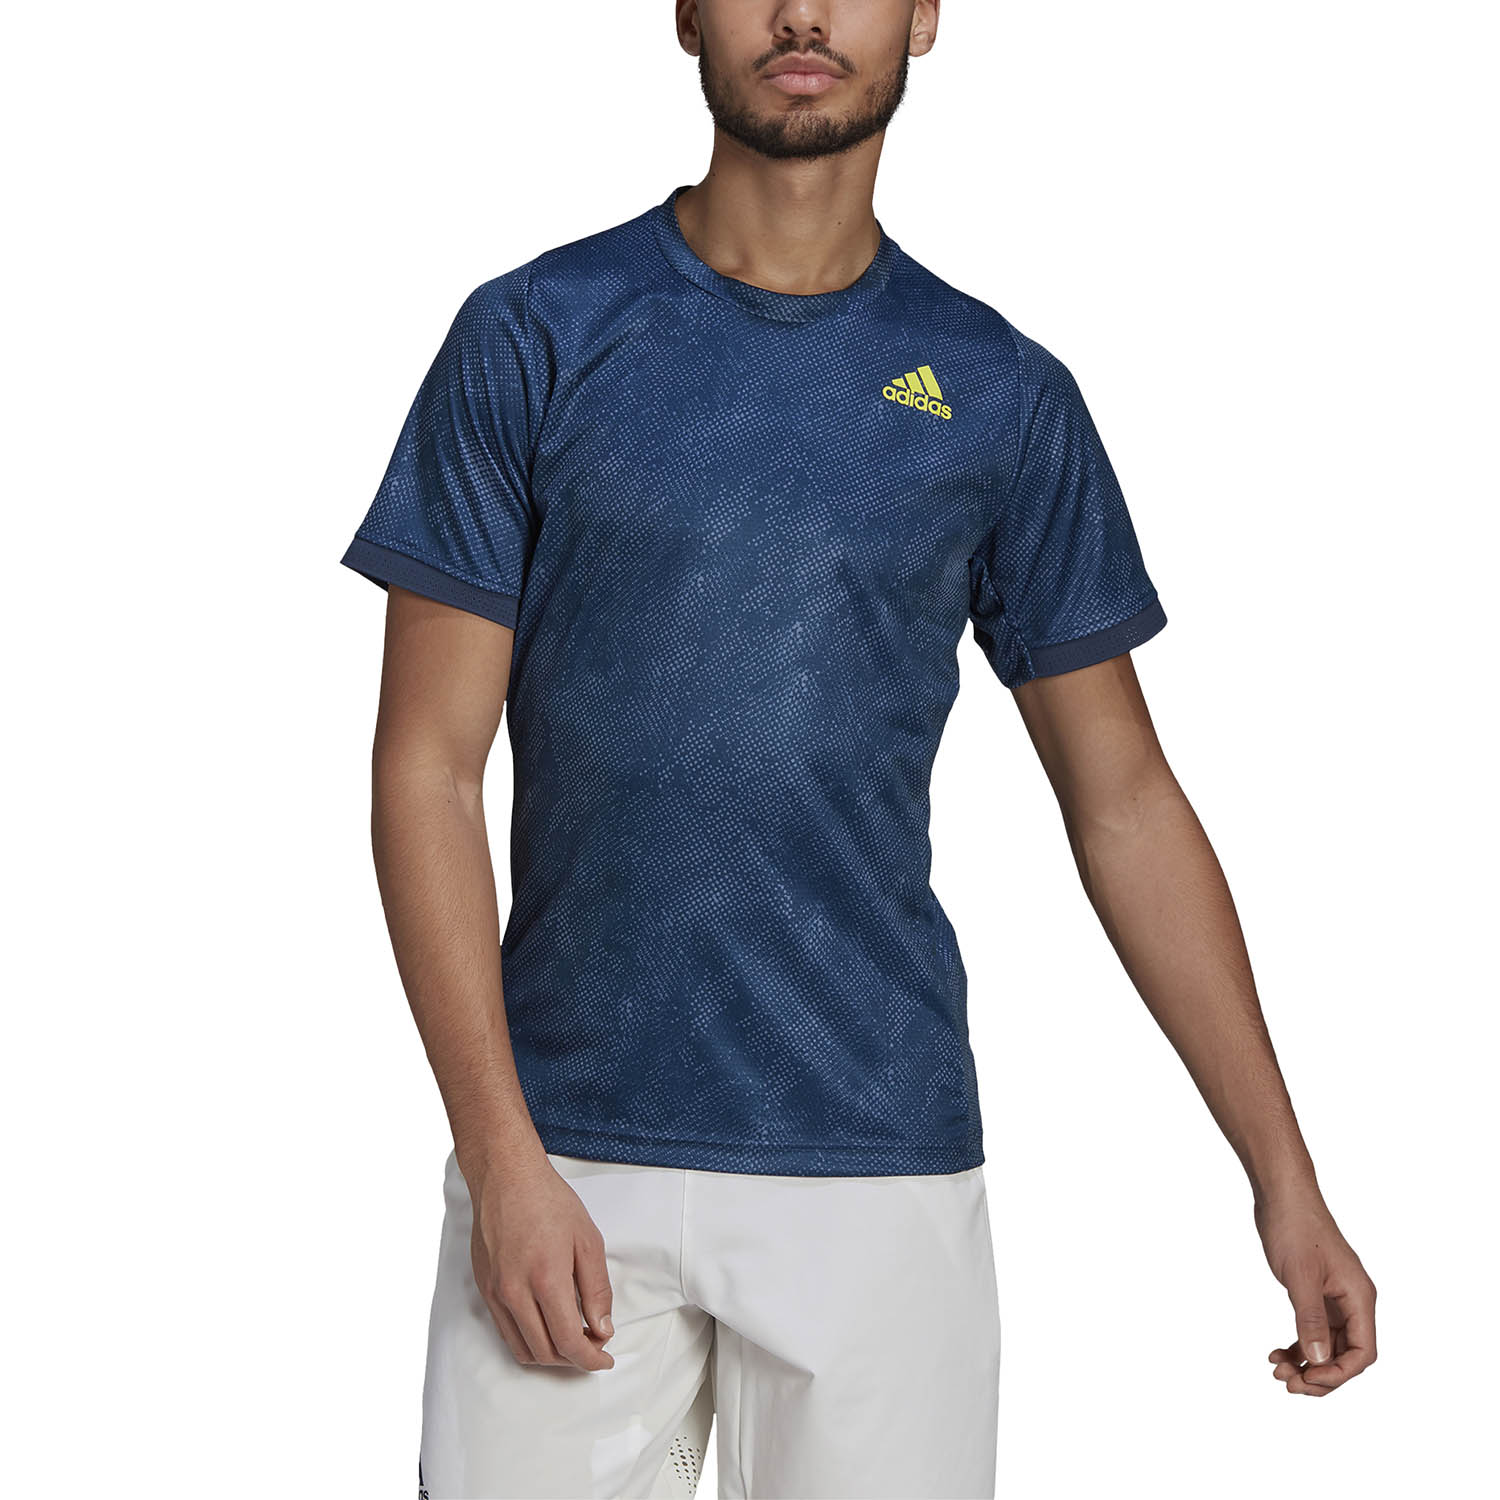 adidas Freelift Printed Primeblue T-Shirt - crew navy/acid yellow/crew blue